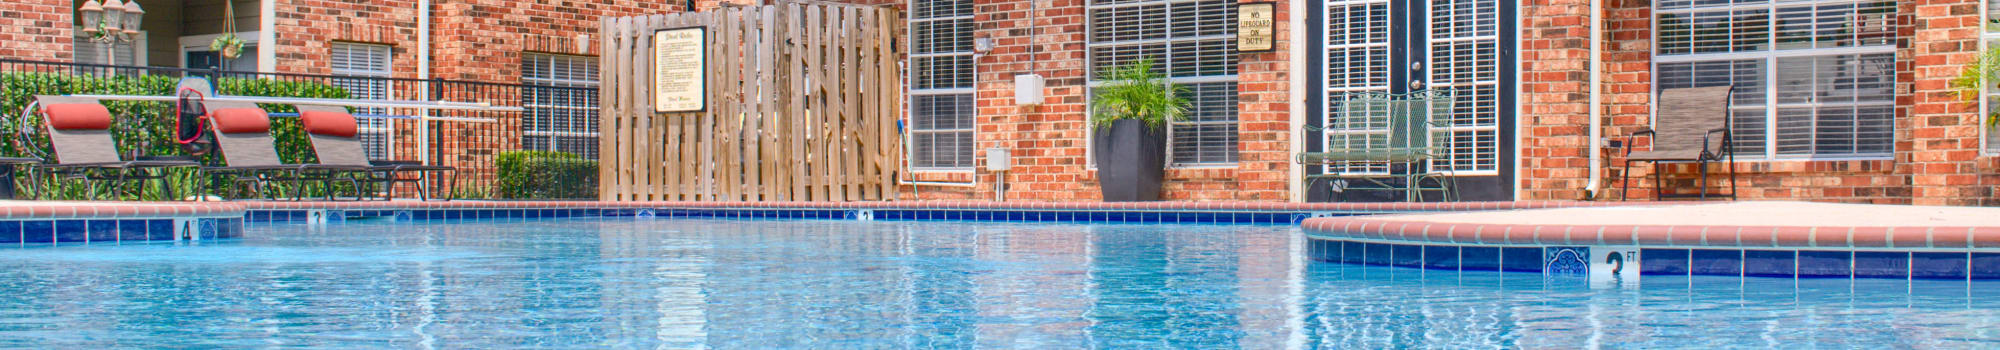 Reviews of The Lexington Apartment Homes in Biloxi, Mississippi